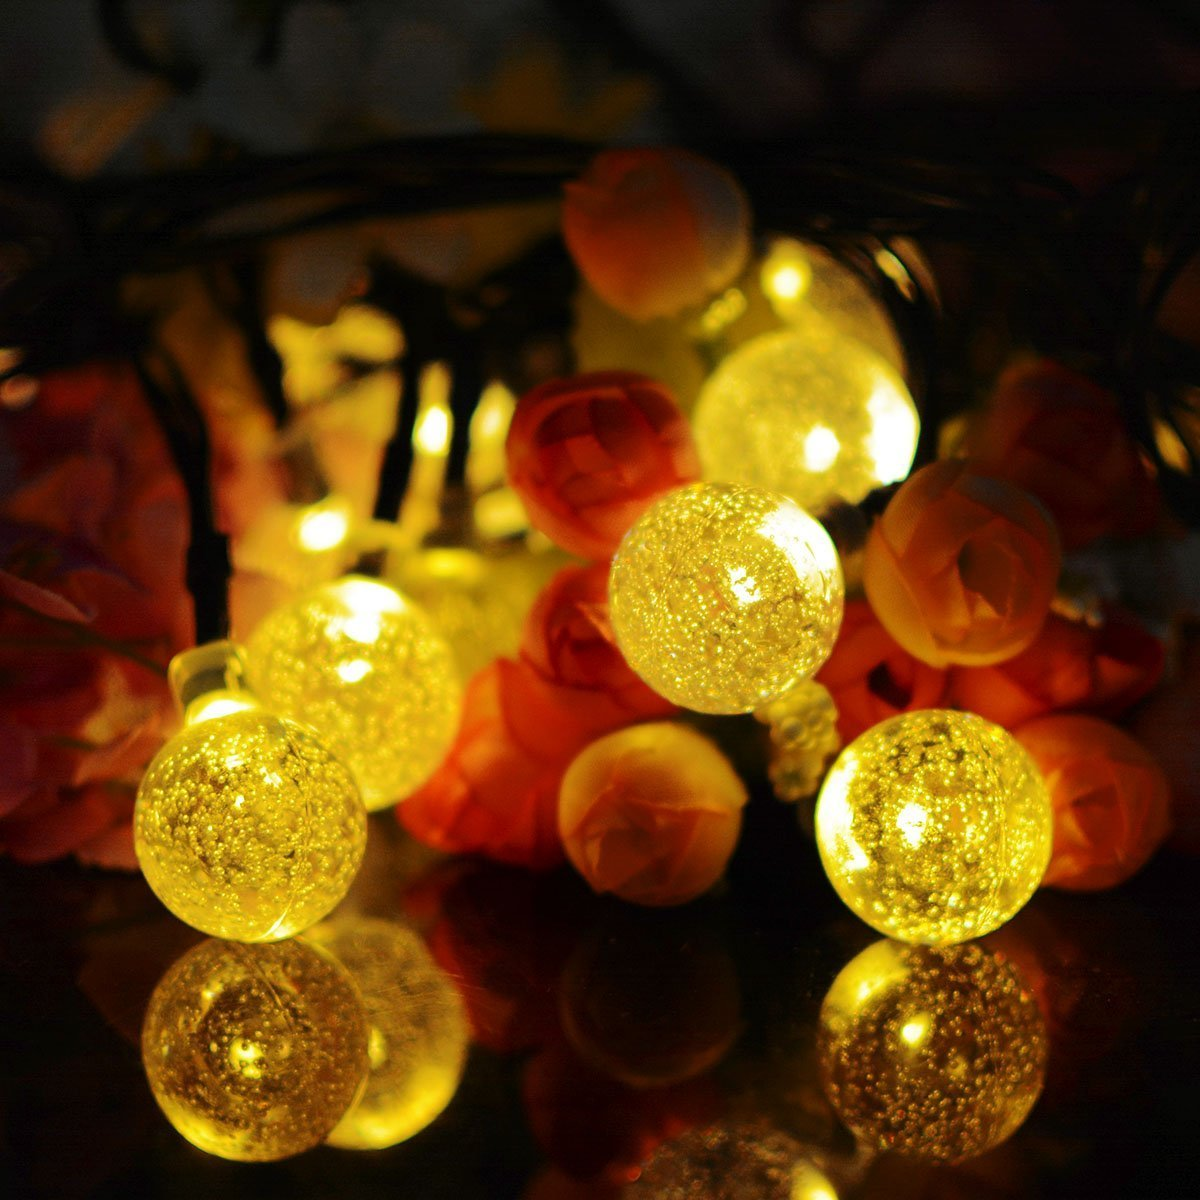 Solar String Lights Outdoor 50 LED, 7M/23Ft Fairy Ball Lights, 8 Modes Waterproof Solar Powered Globe Lights, Garden Lighting for Home, Yard, Party, Festival, Christmas, Decoration (Warm White)